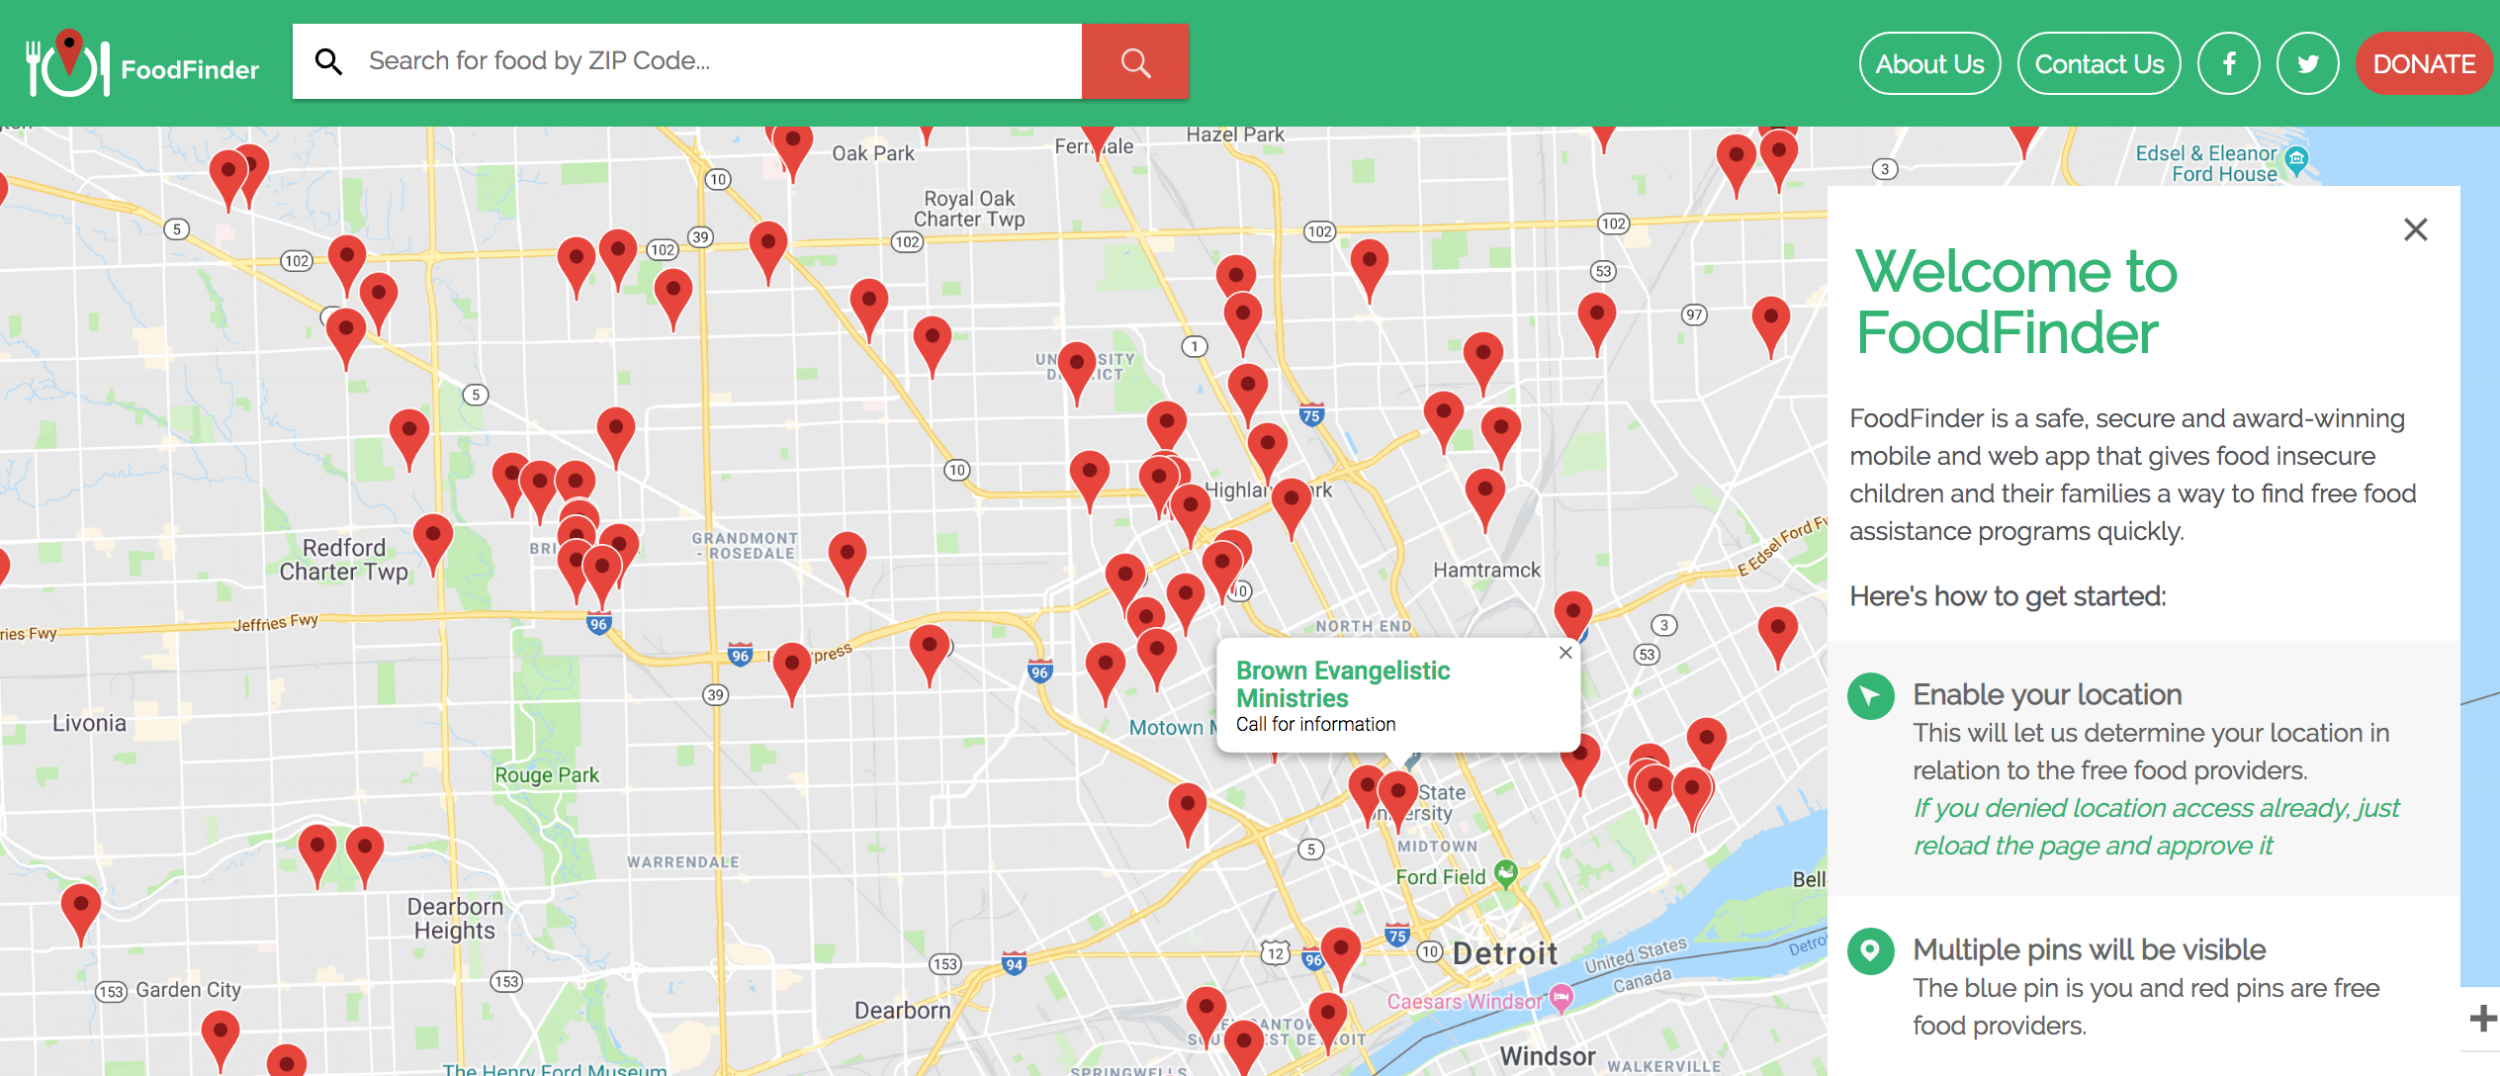 FoodFinder showing accessible food by zip code